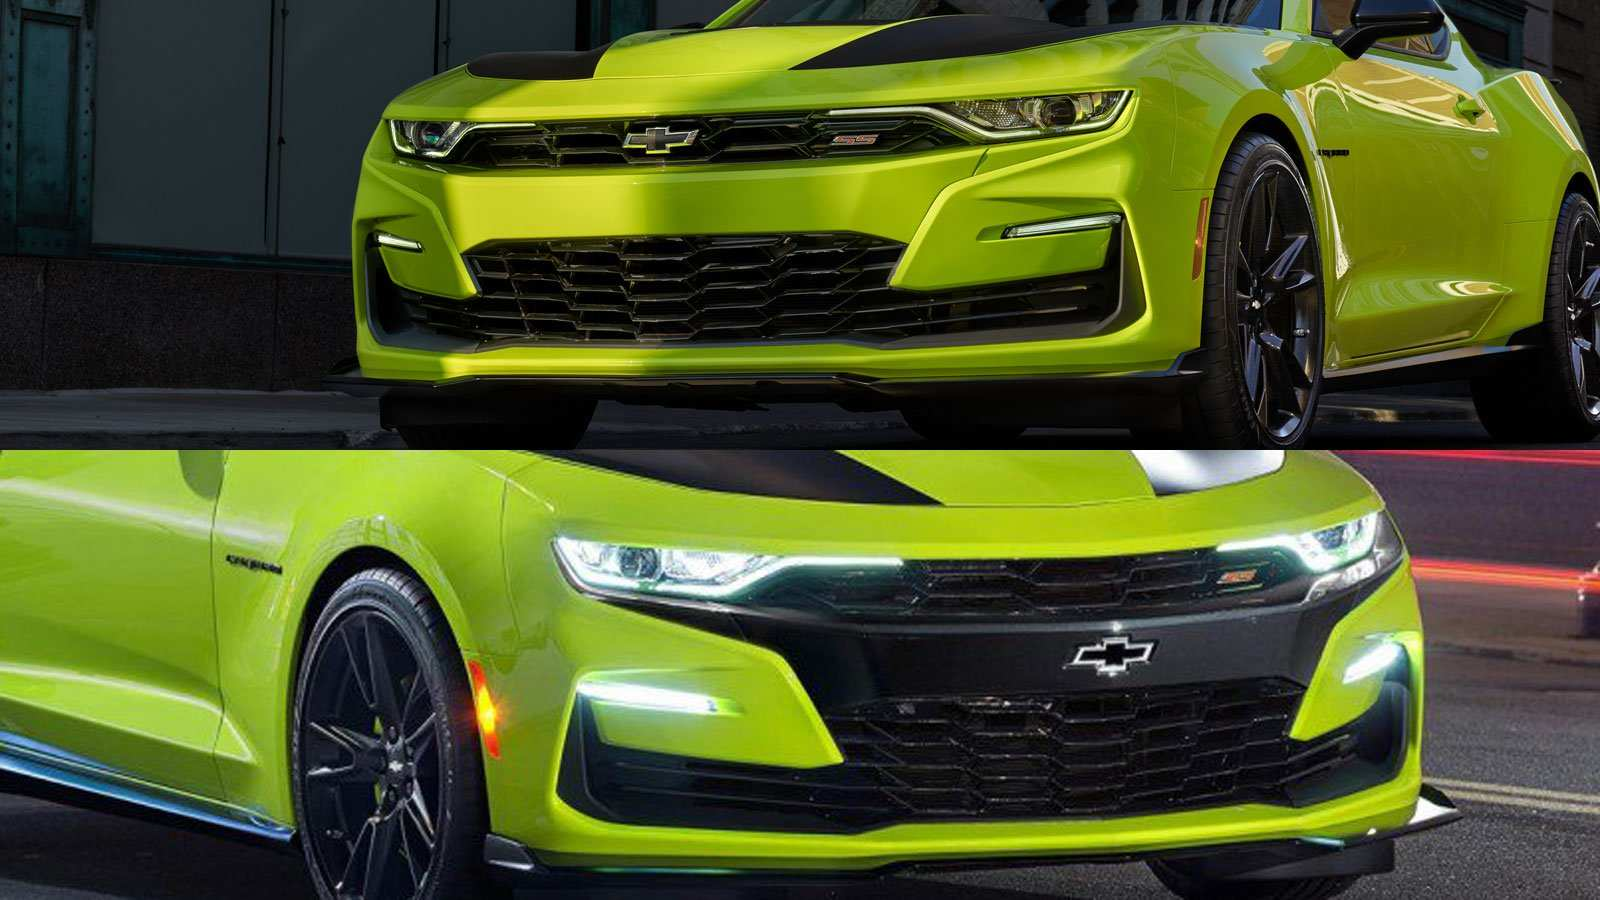 95 All New 2019 The Camaro Ss Review